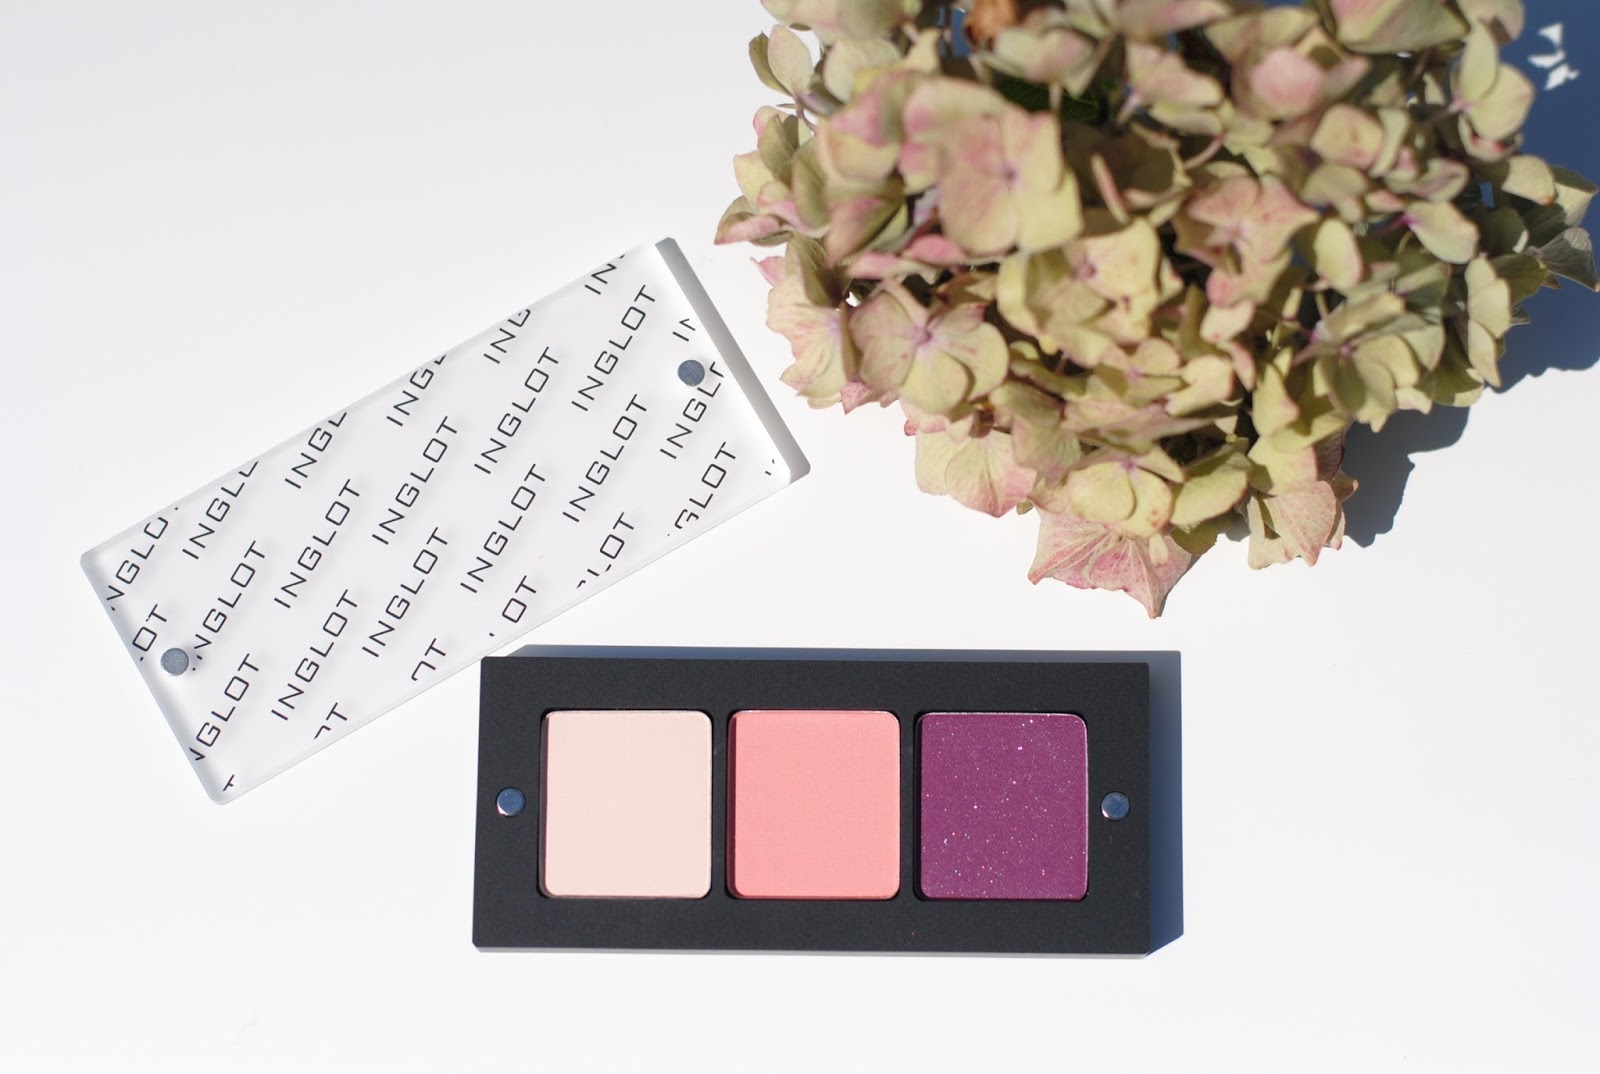 inglot peach or plum eyeshadow palette